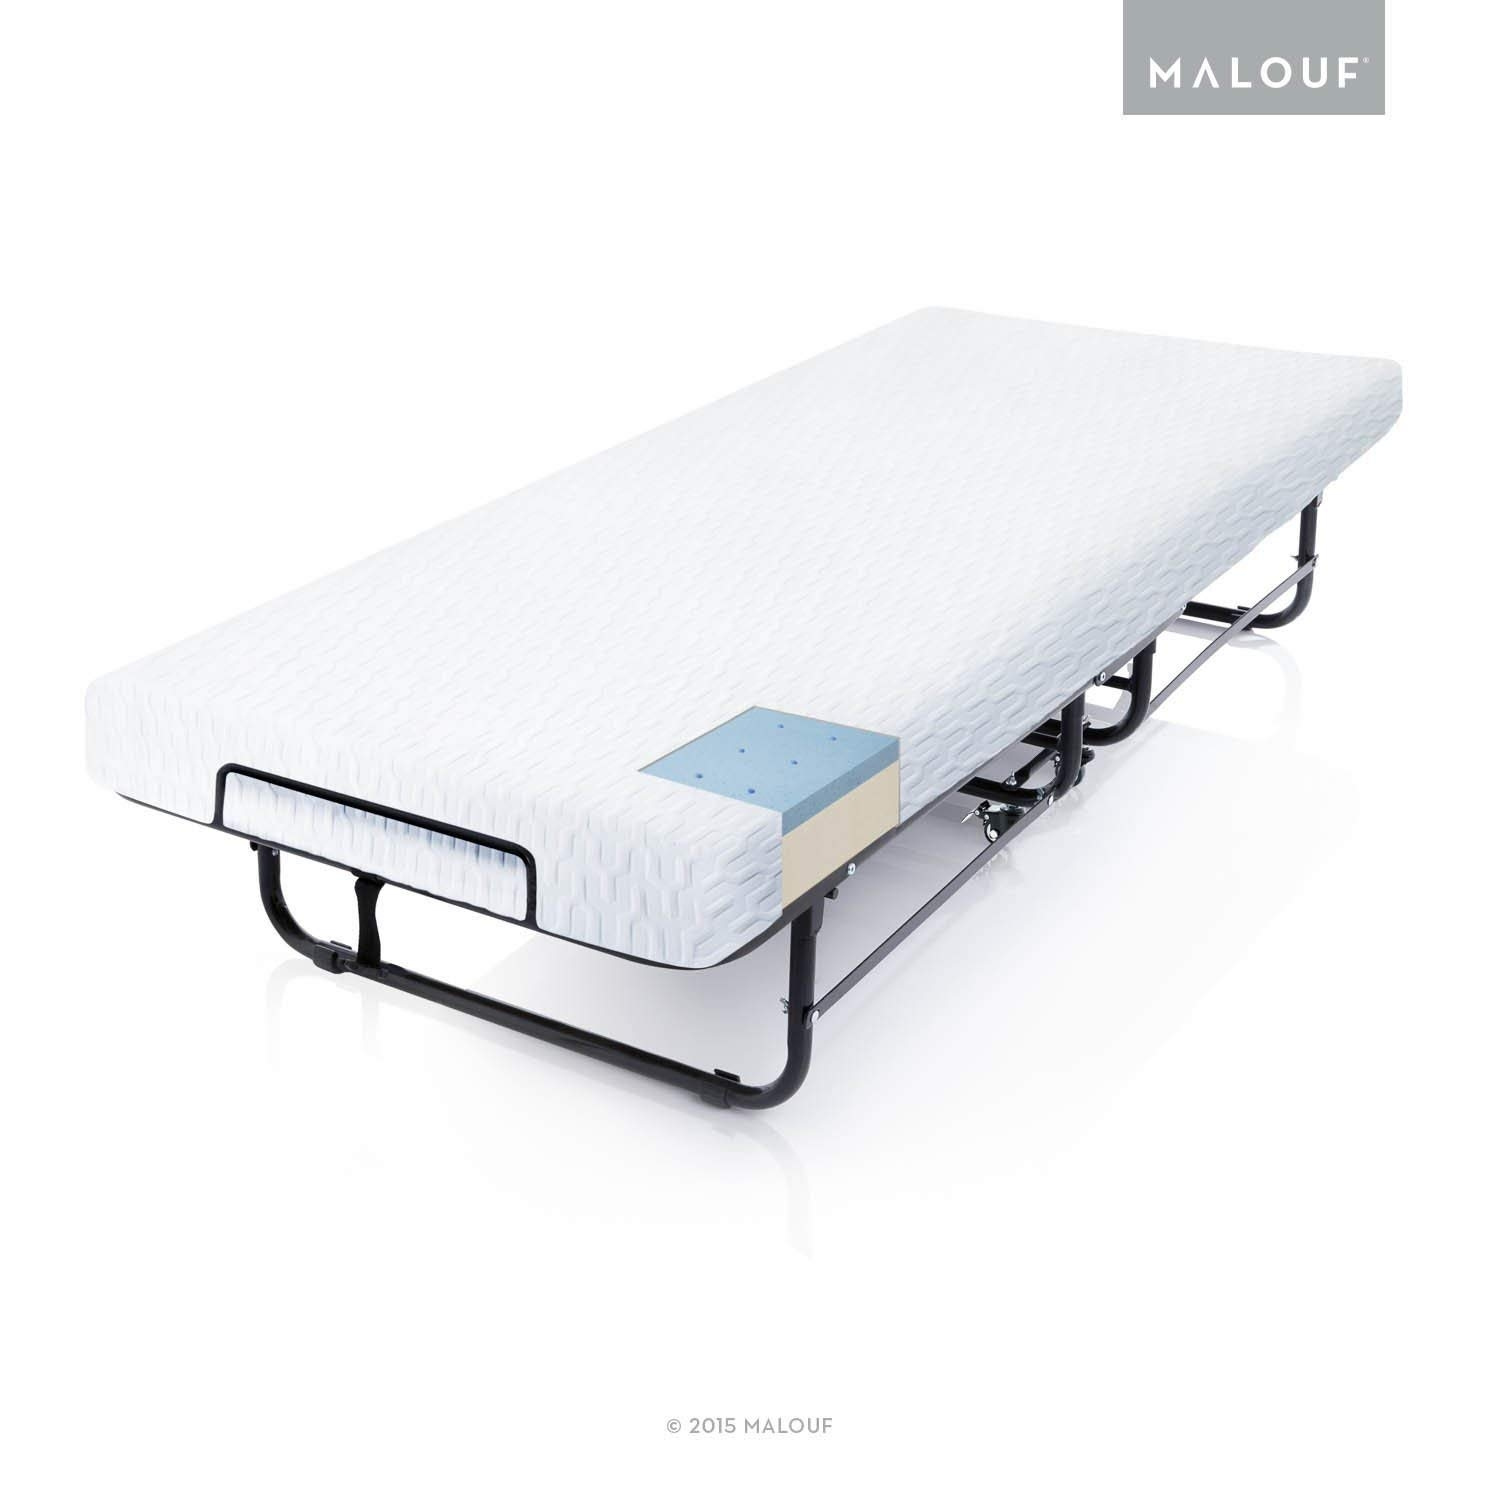 Cot Size Rollaway Folding, 5-Year Warranty-Structures Hospitality/Guest Bed with Premium Gel Memory Foam Mattress, by MALOUF